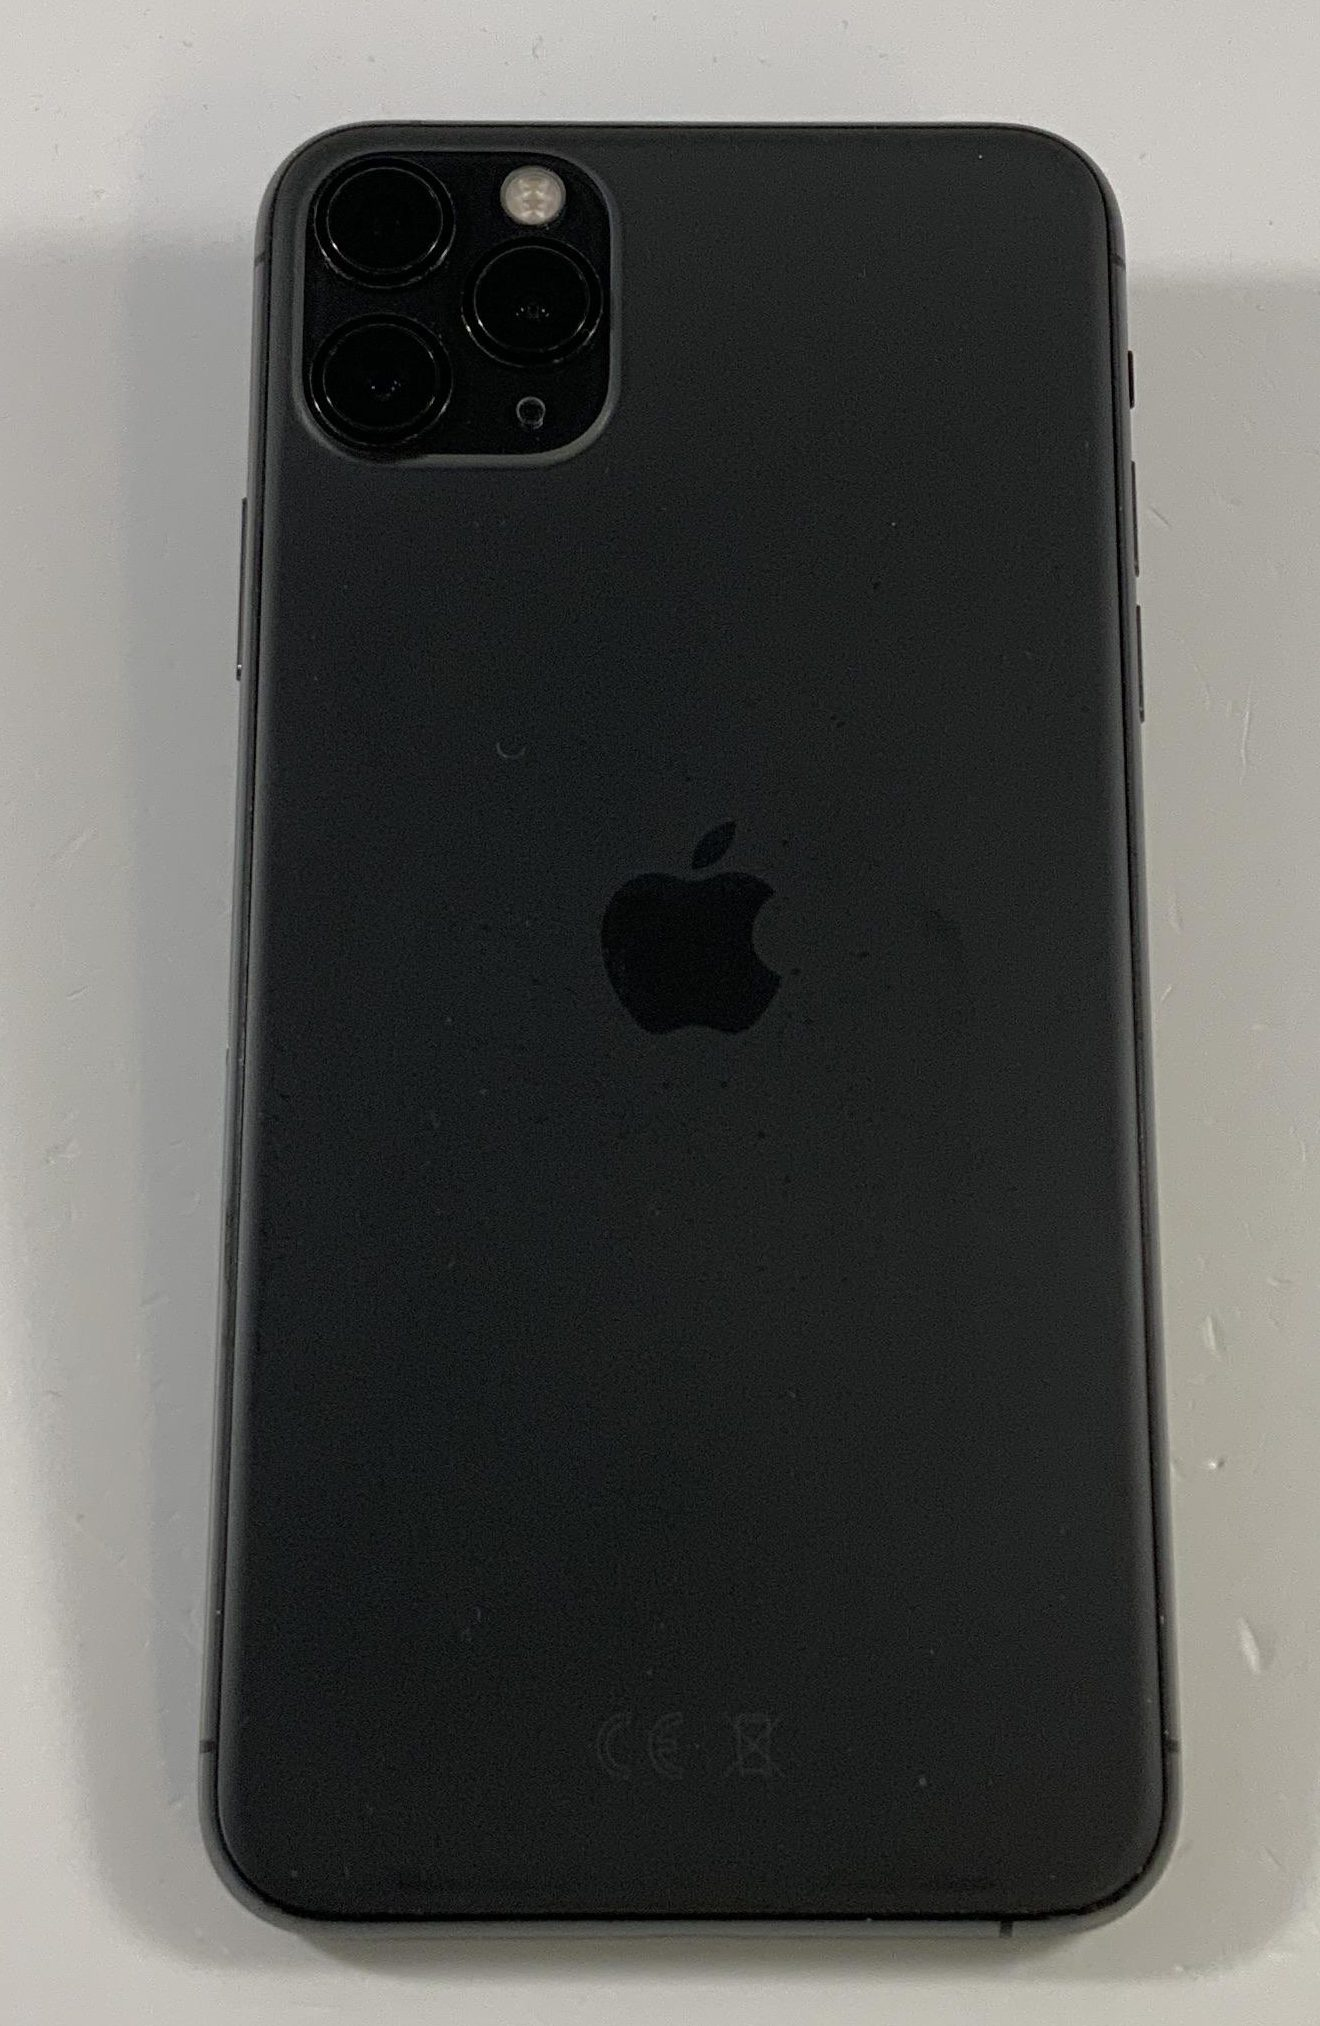 iPhone 11 Pro Max 64GB, 64GB, Space Gray, image 2